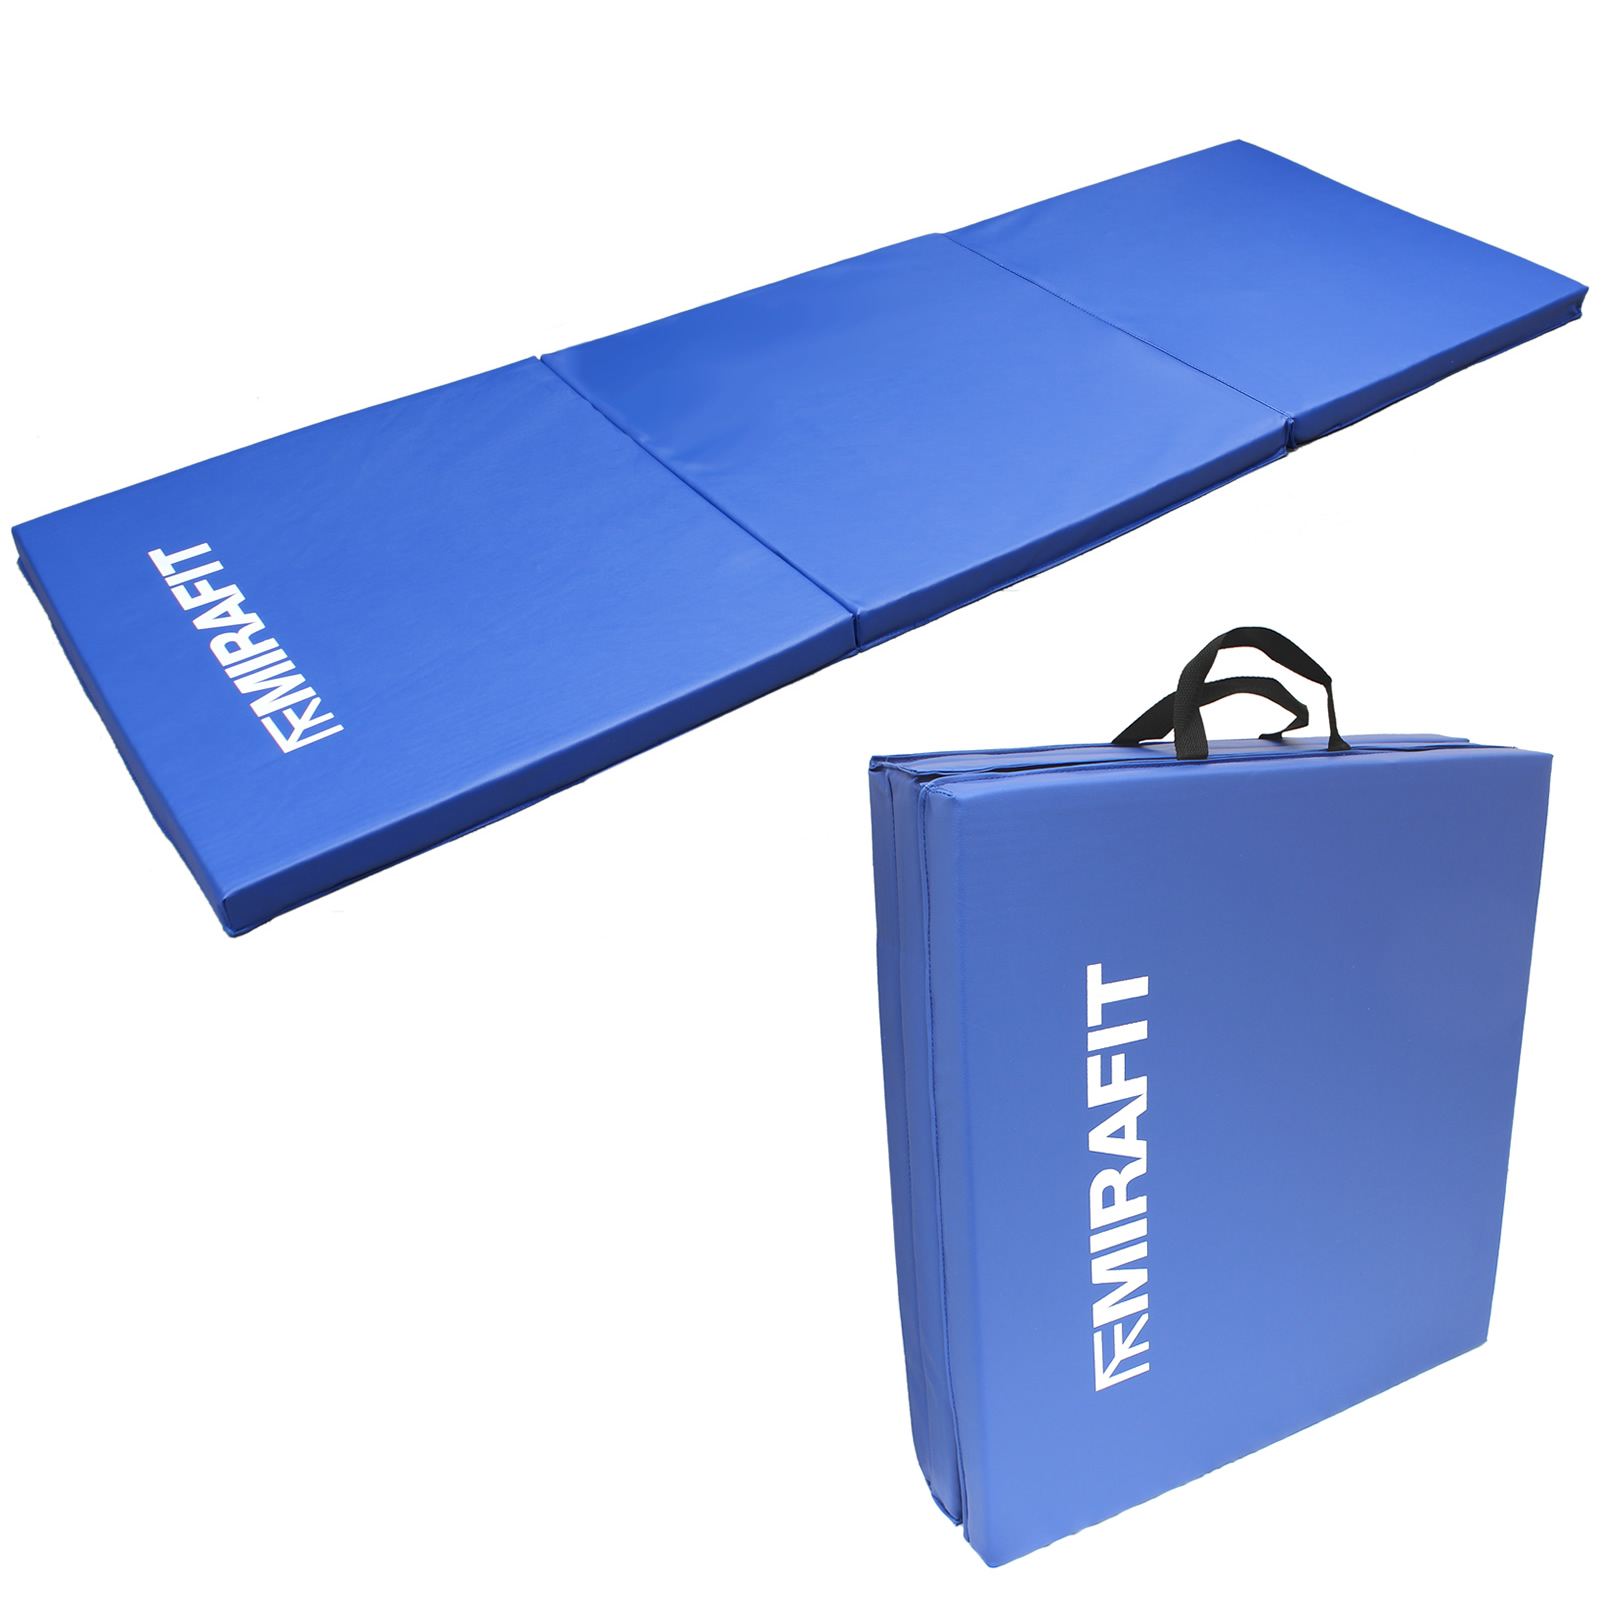 MIRAFIT Tri-Fold Folding Exercise Mat Yoga/Pilates/Gym